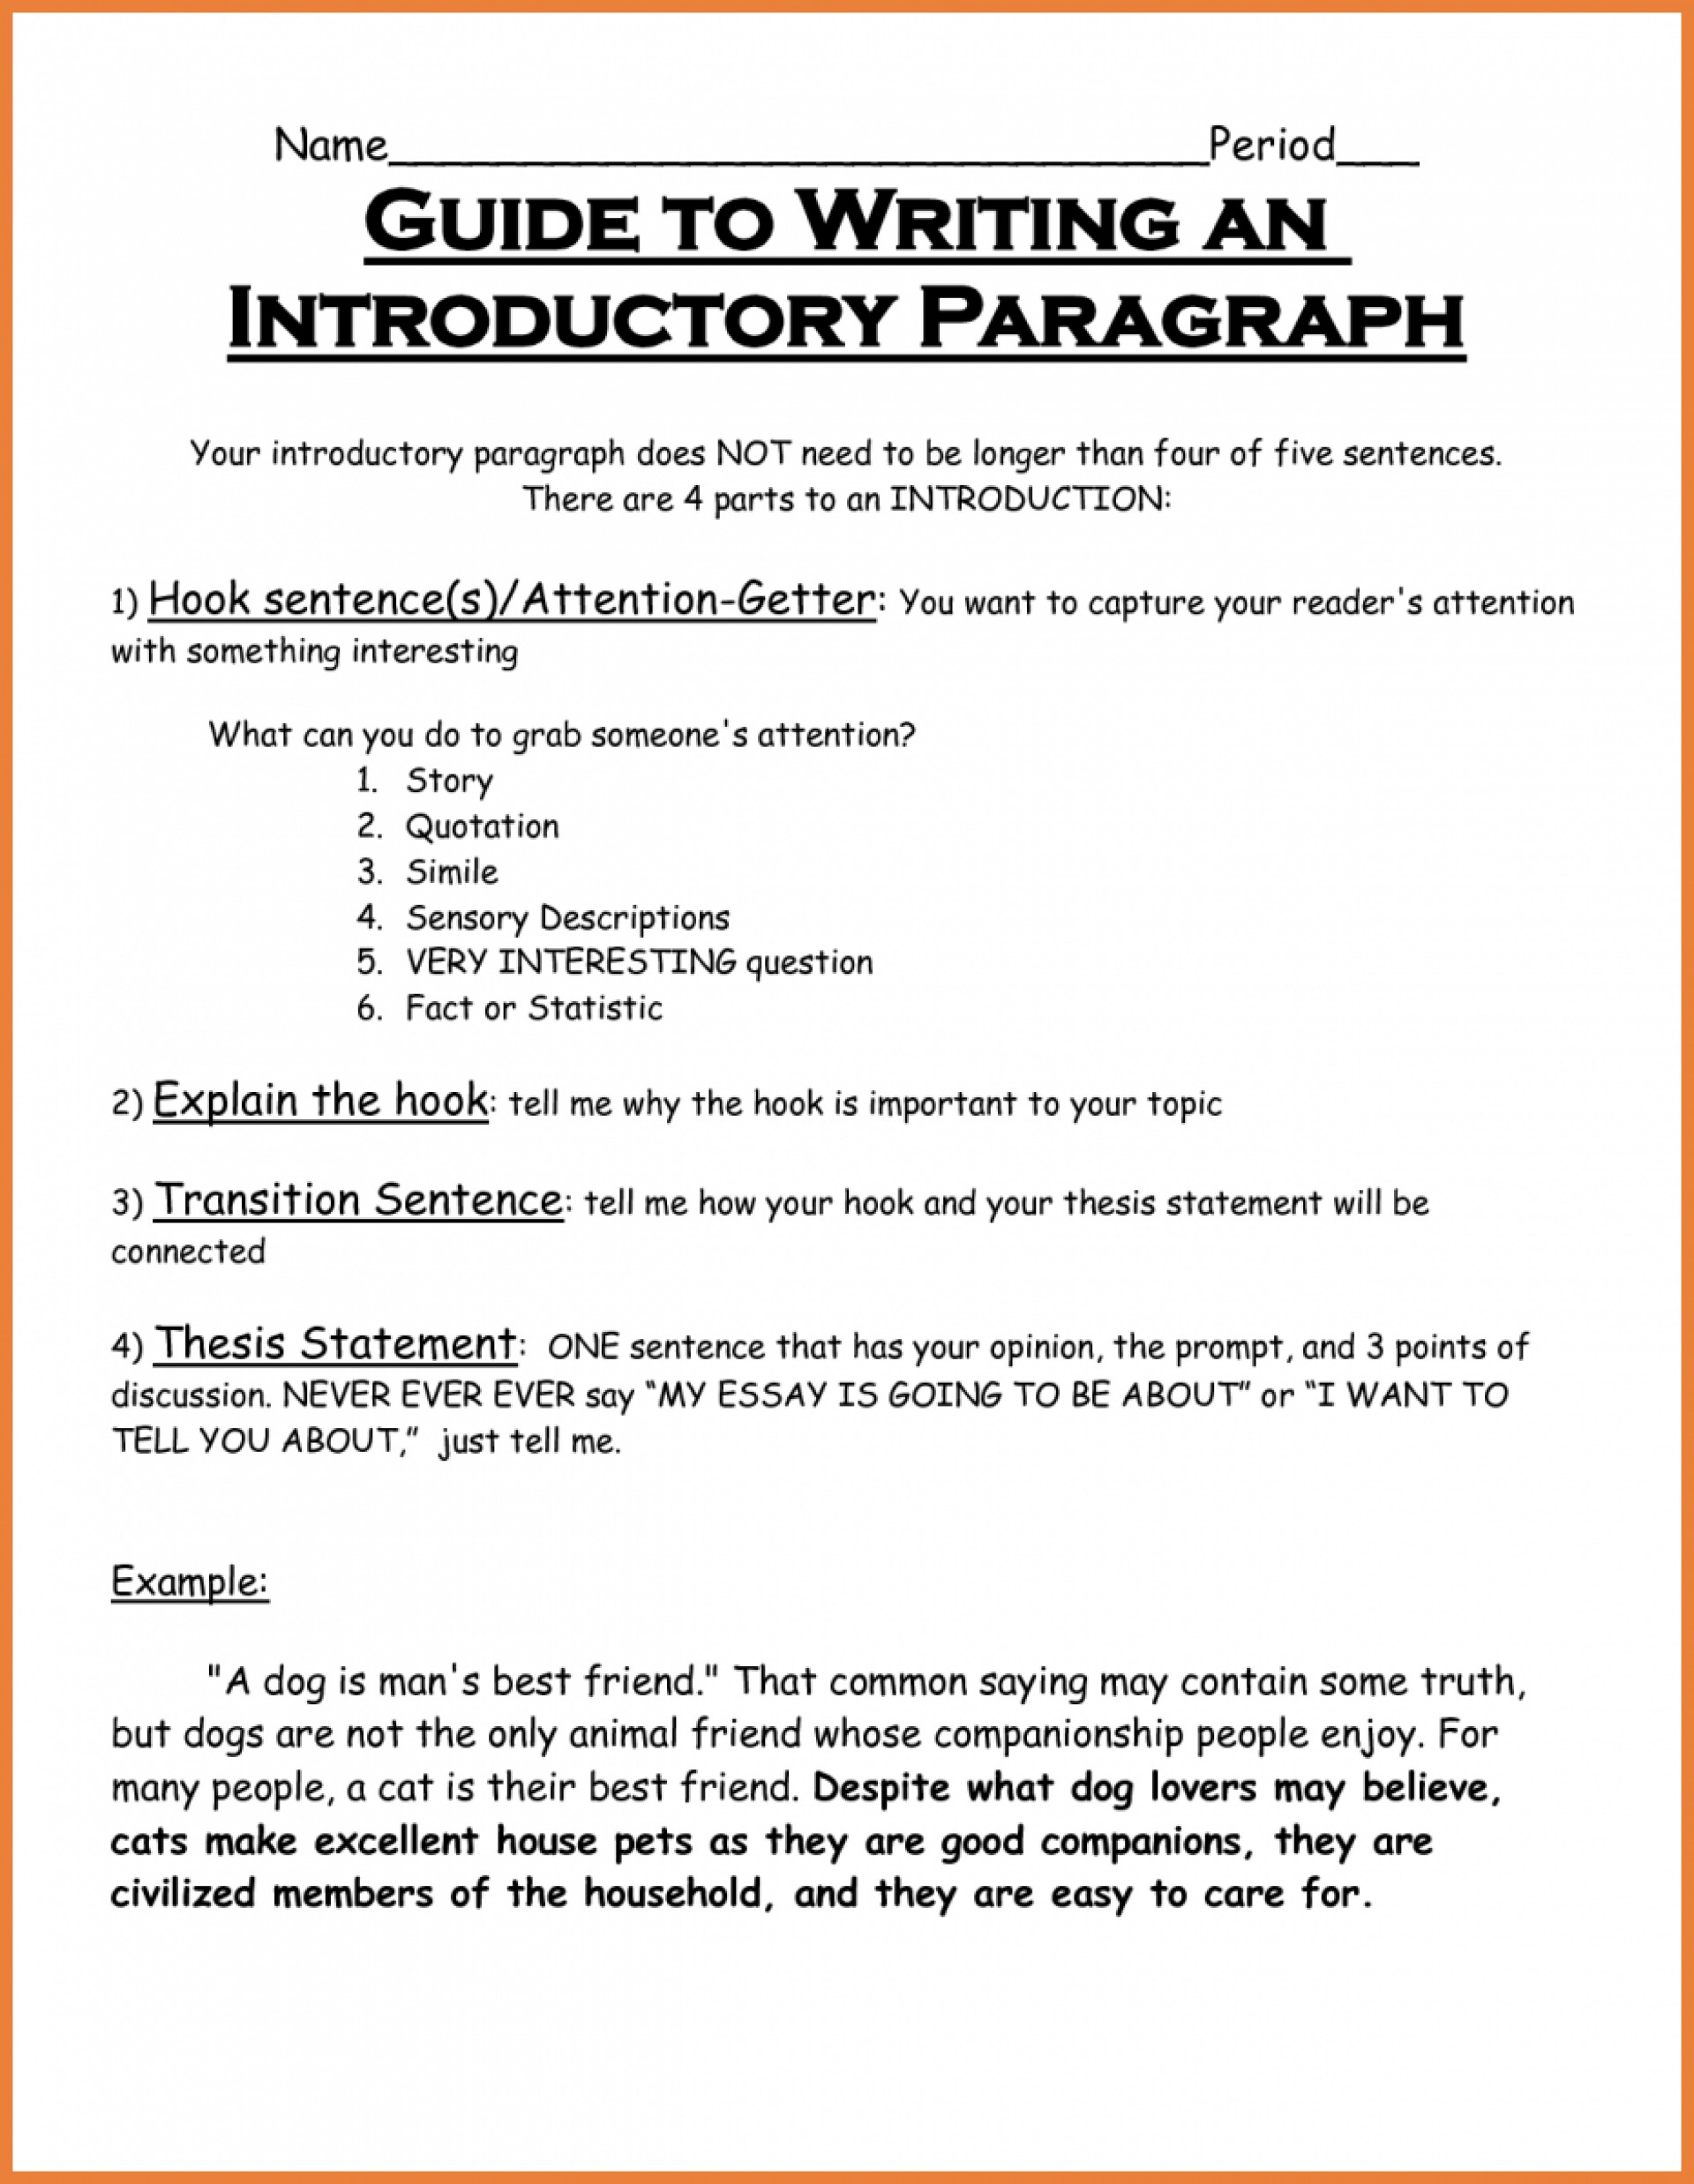 020 Introaph Research Paper Example Of Good Introduction To An Essay Extraordinary Template Frightening A Apa Pdf 1920